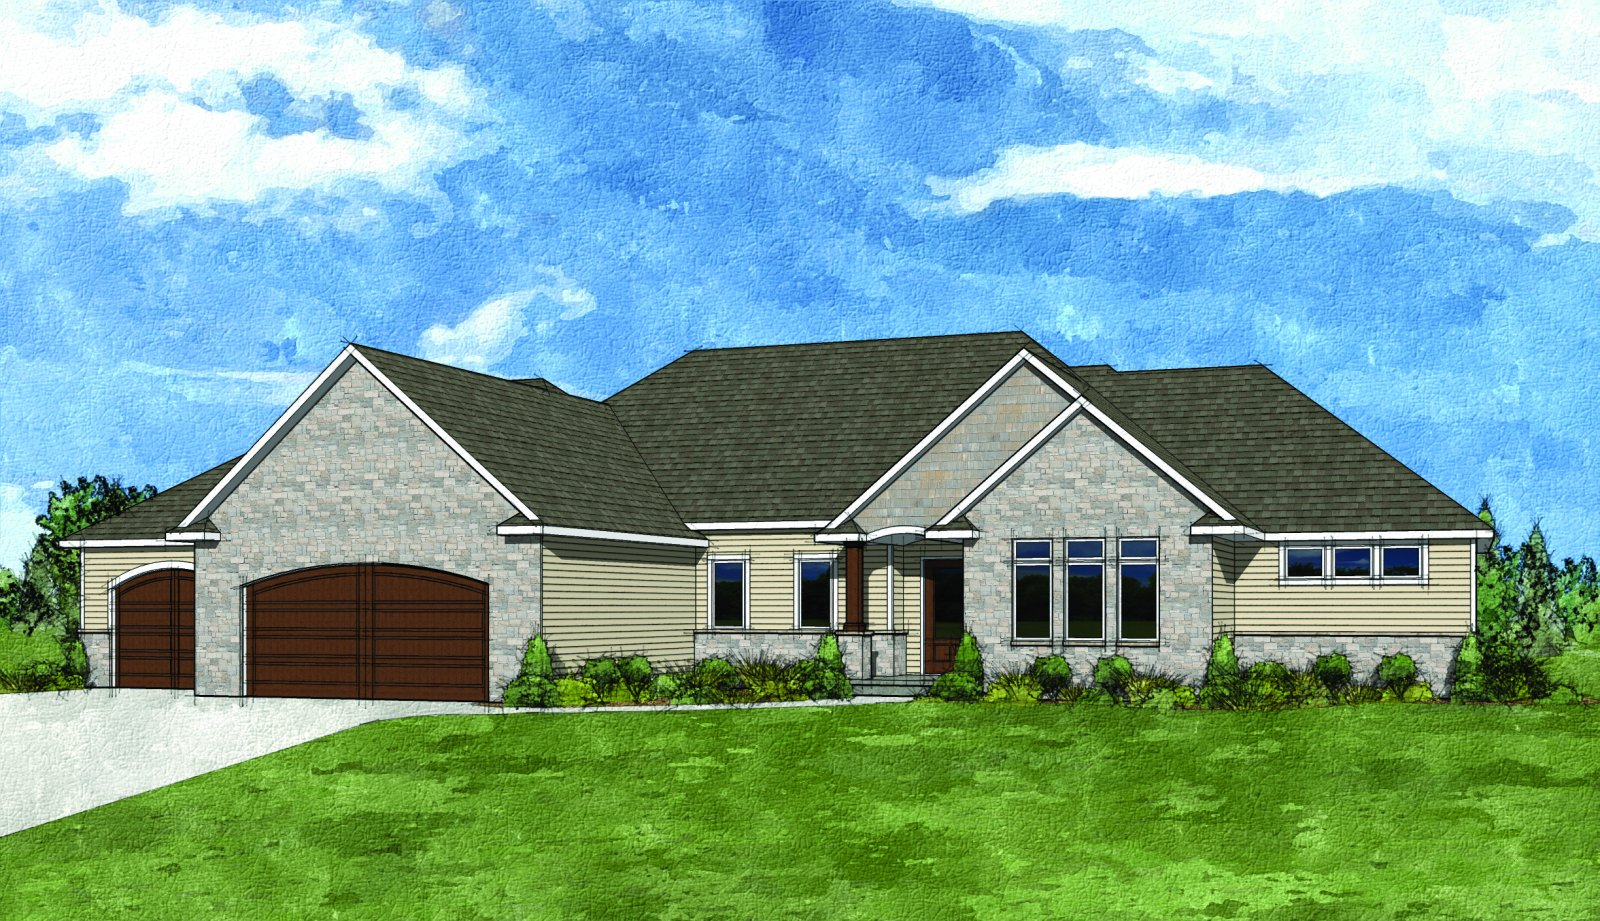 Fox cities hba parade of homes Summer homes builder